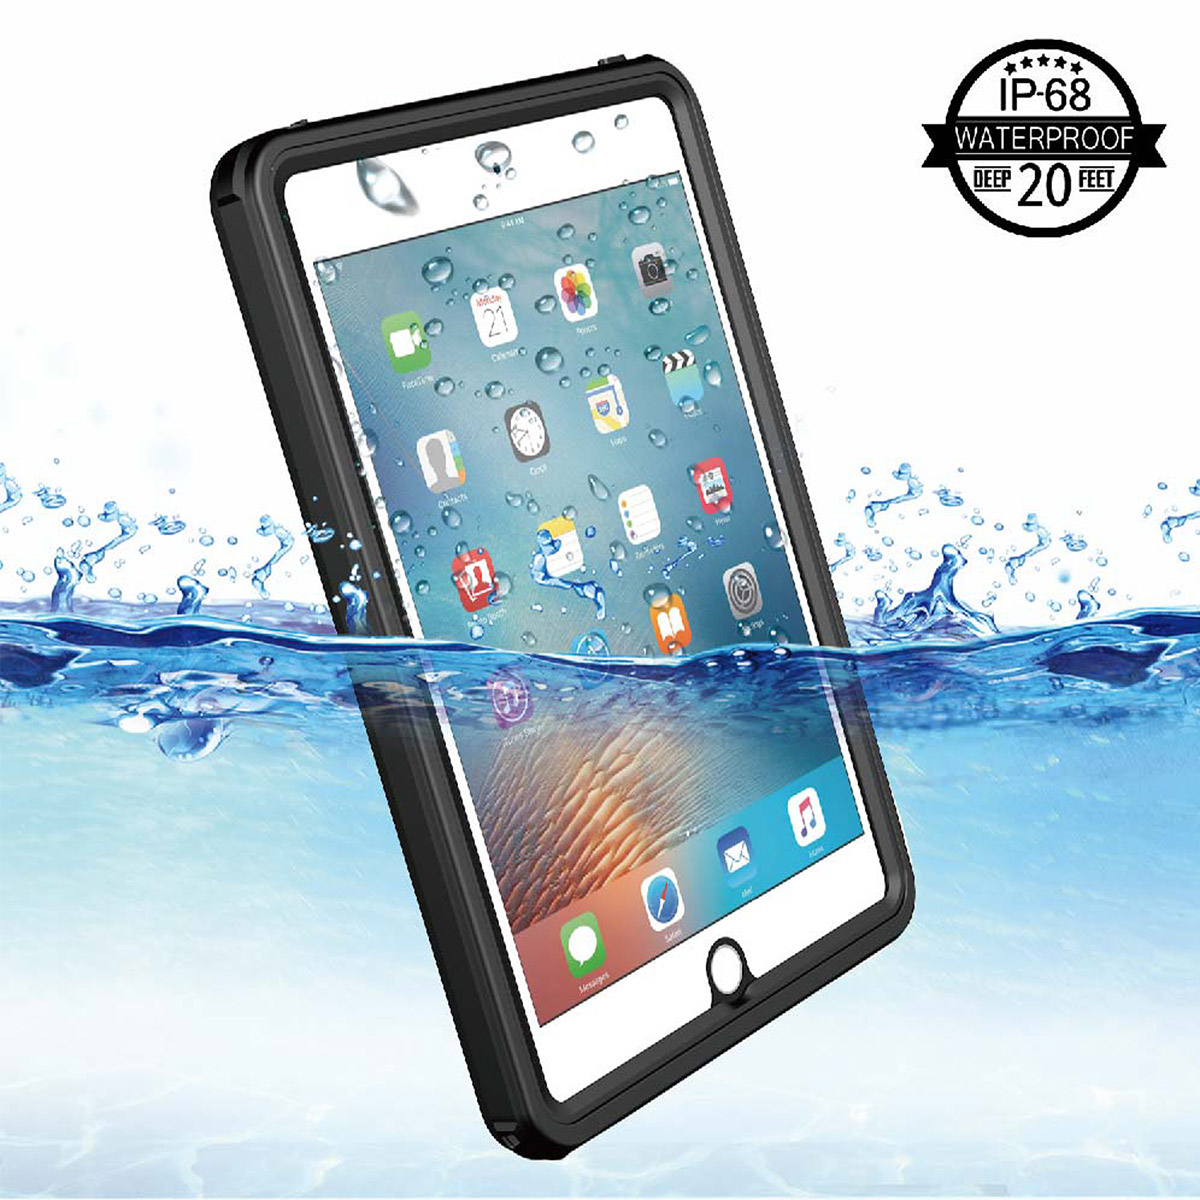 For iPad Mini 4 Waterproof Tablet Case Shockproof Dust Proof Tablet Cover  with Adjustable Tablet Stand Built-in Screen Protector